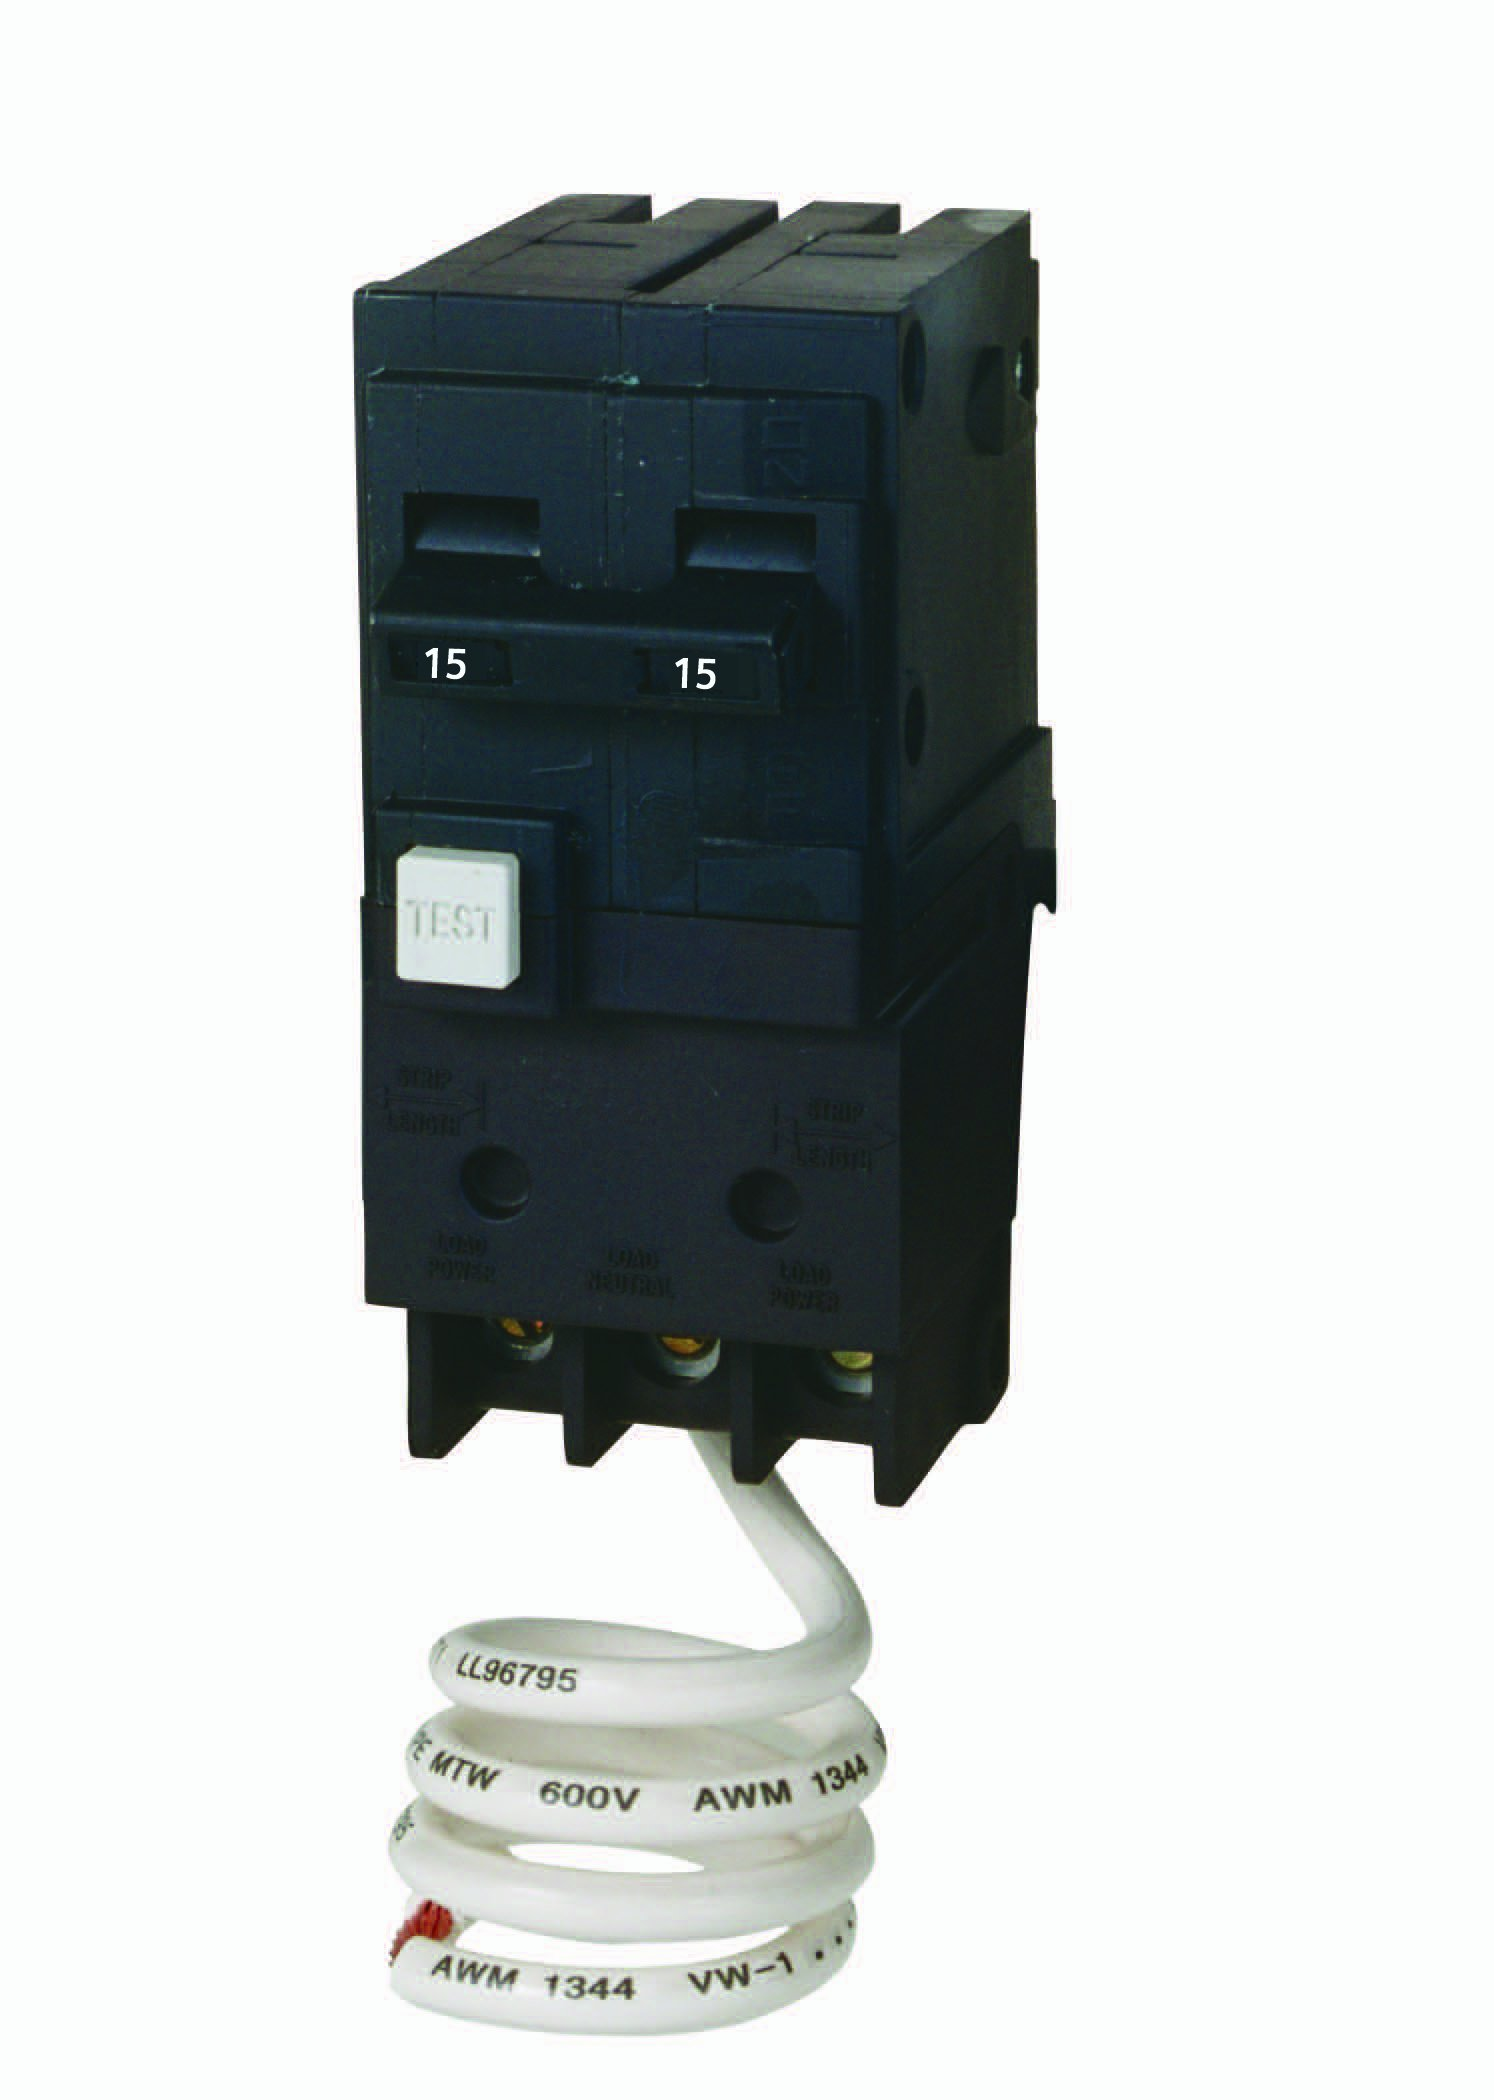 Murray MP215GF 15-Amp 2 Pole 240-Volt Ground Fault Circuit Interrupter